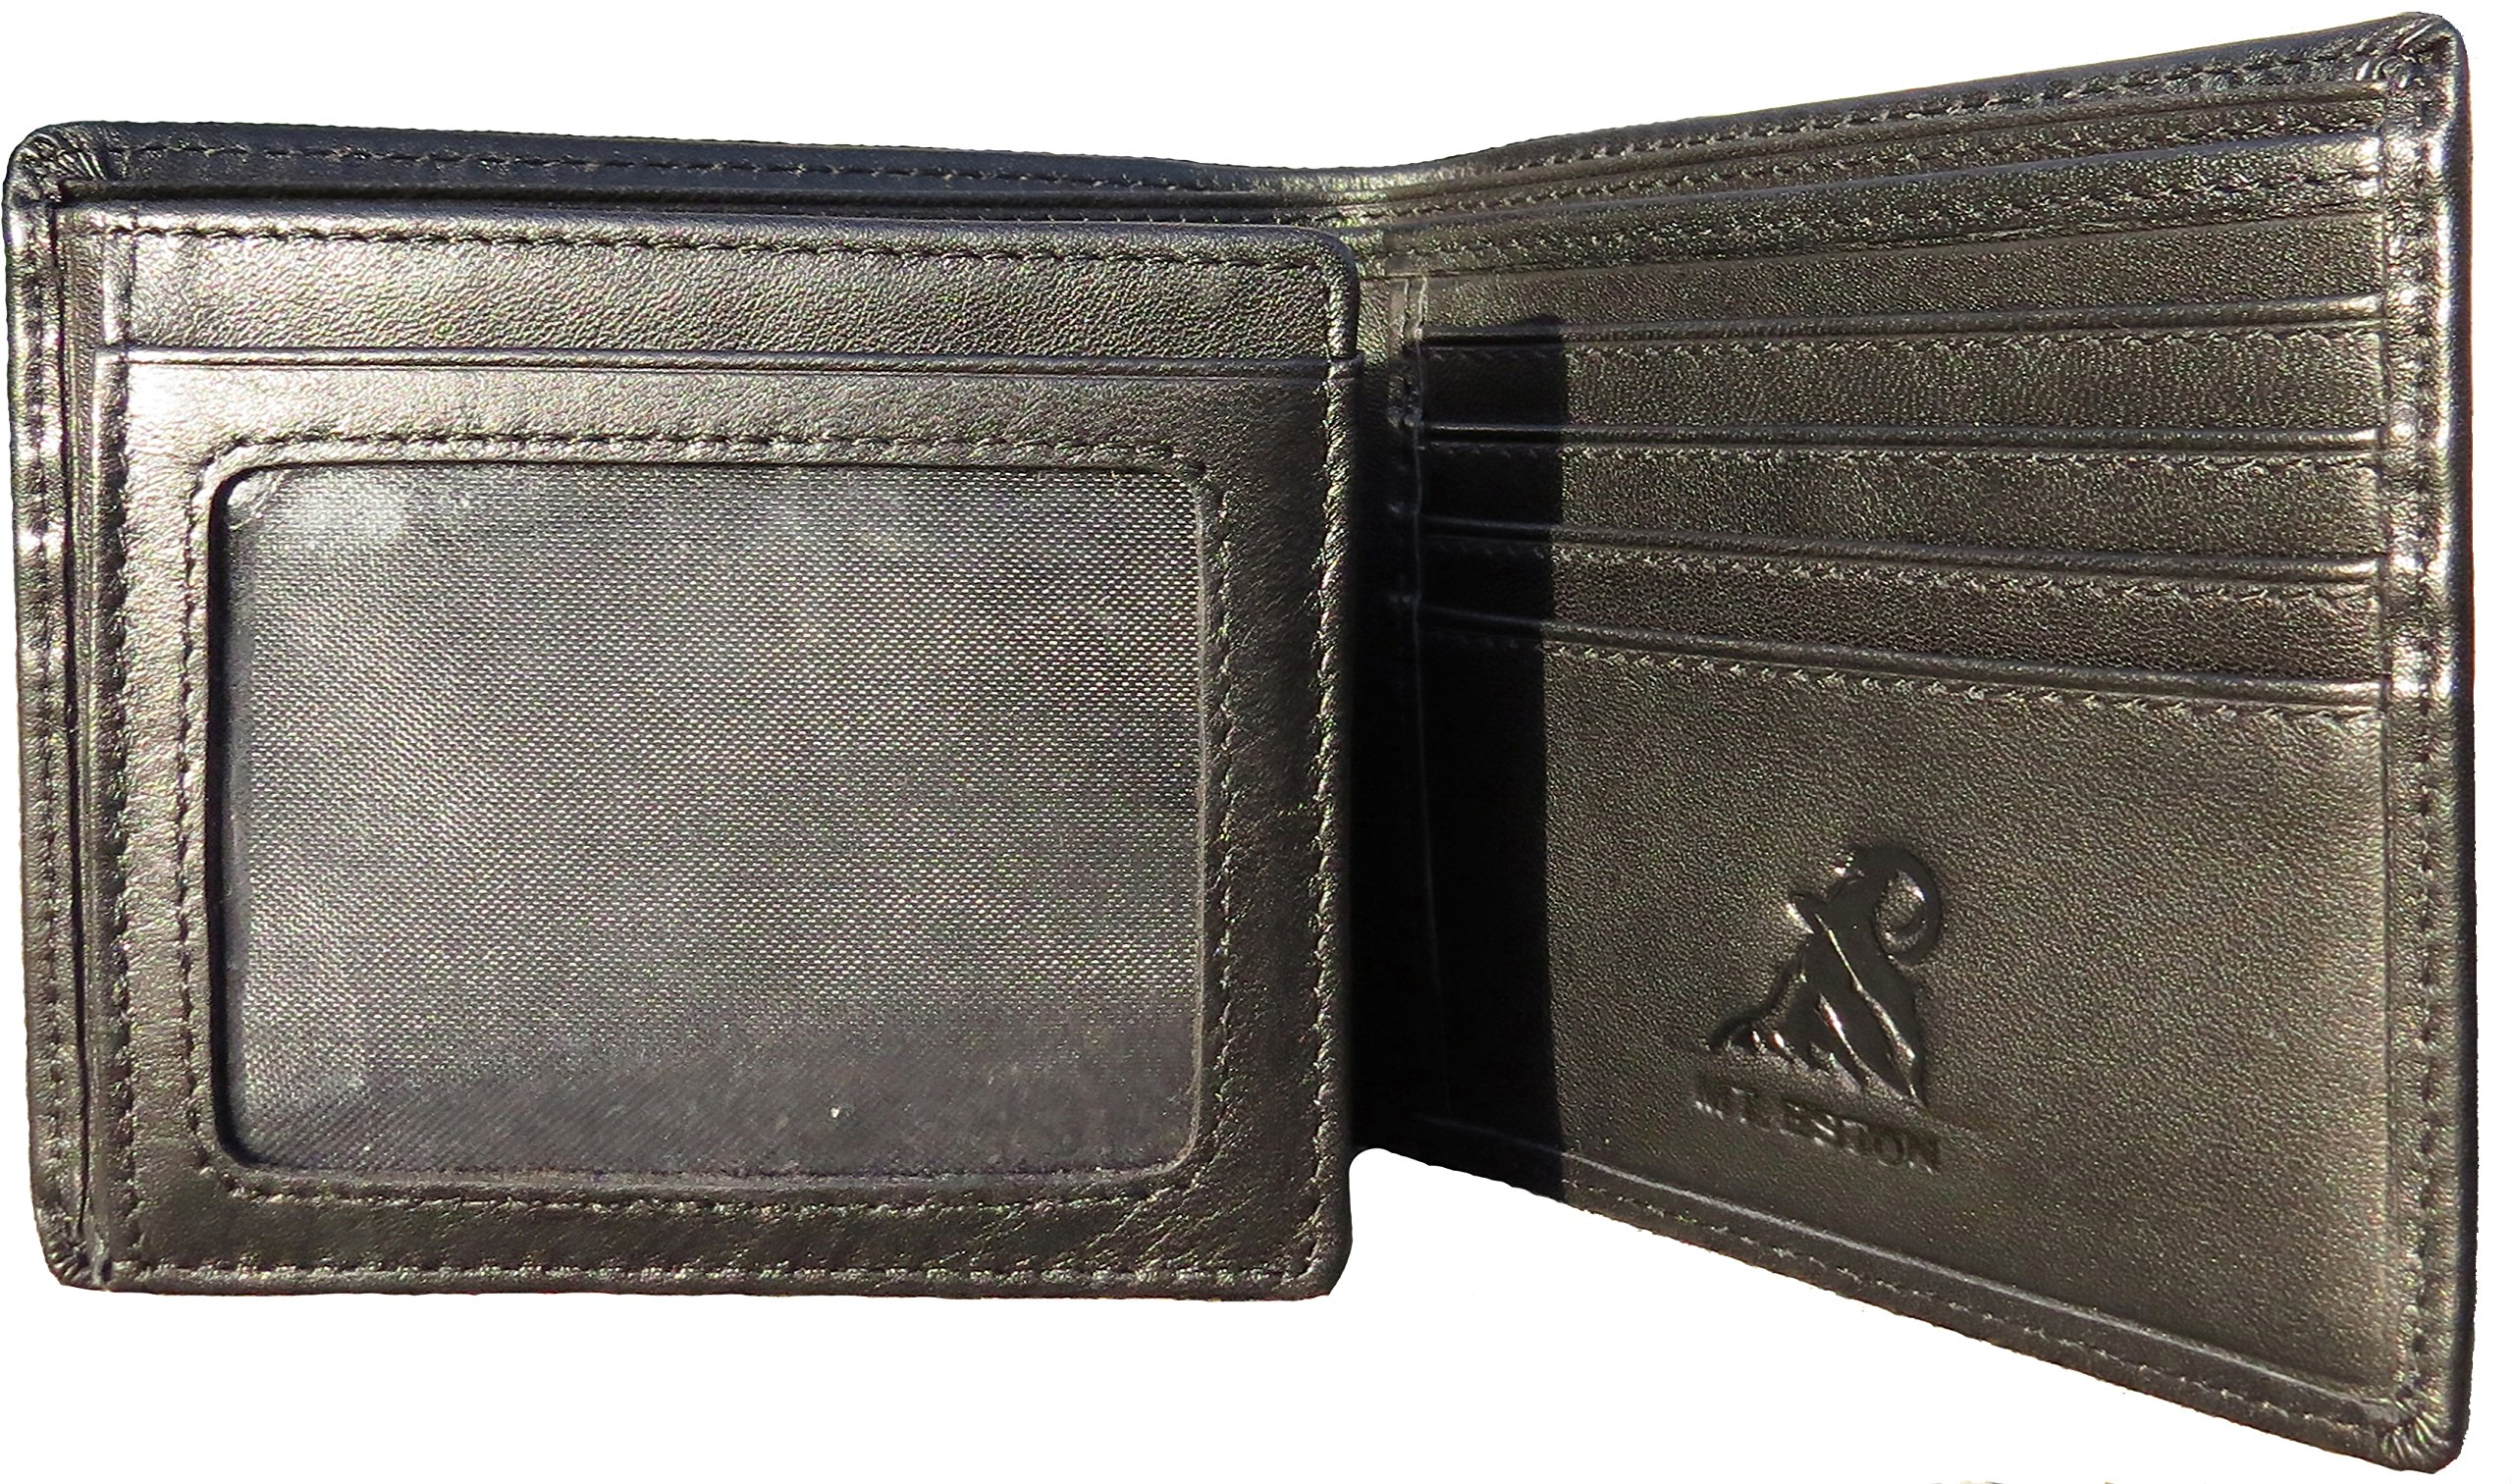 Mt. Eston RFID Blocking Trifold Bifold Mens Leather Wallet, 18 Pocket Extra Capacity, High-End Build, Gift Box for Men (Previously Mt. Everest) by Mt. Everest (Image #3)